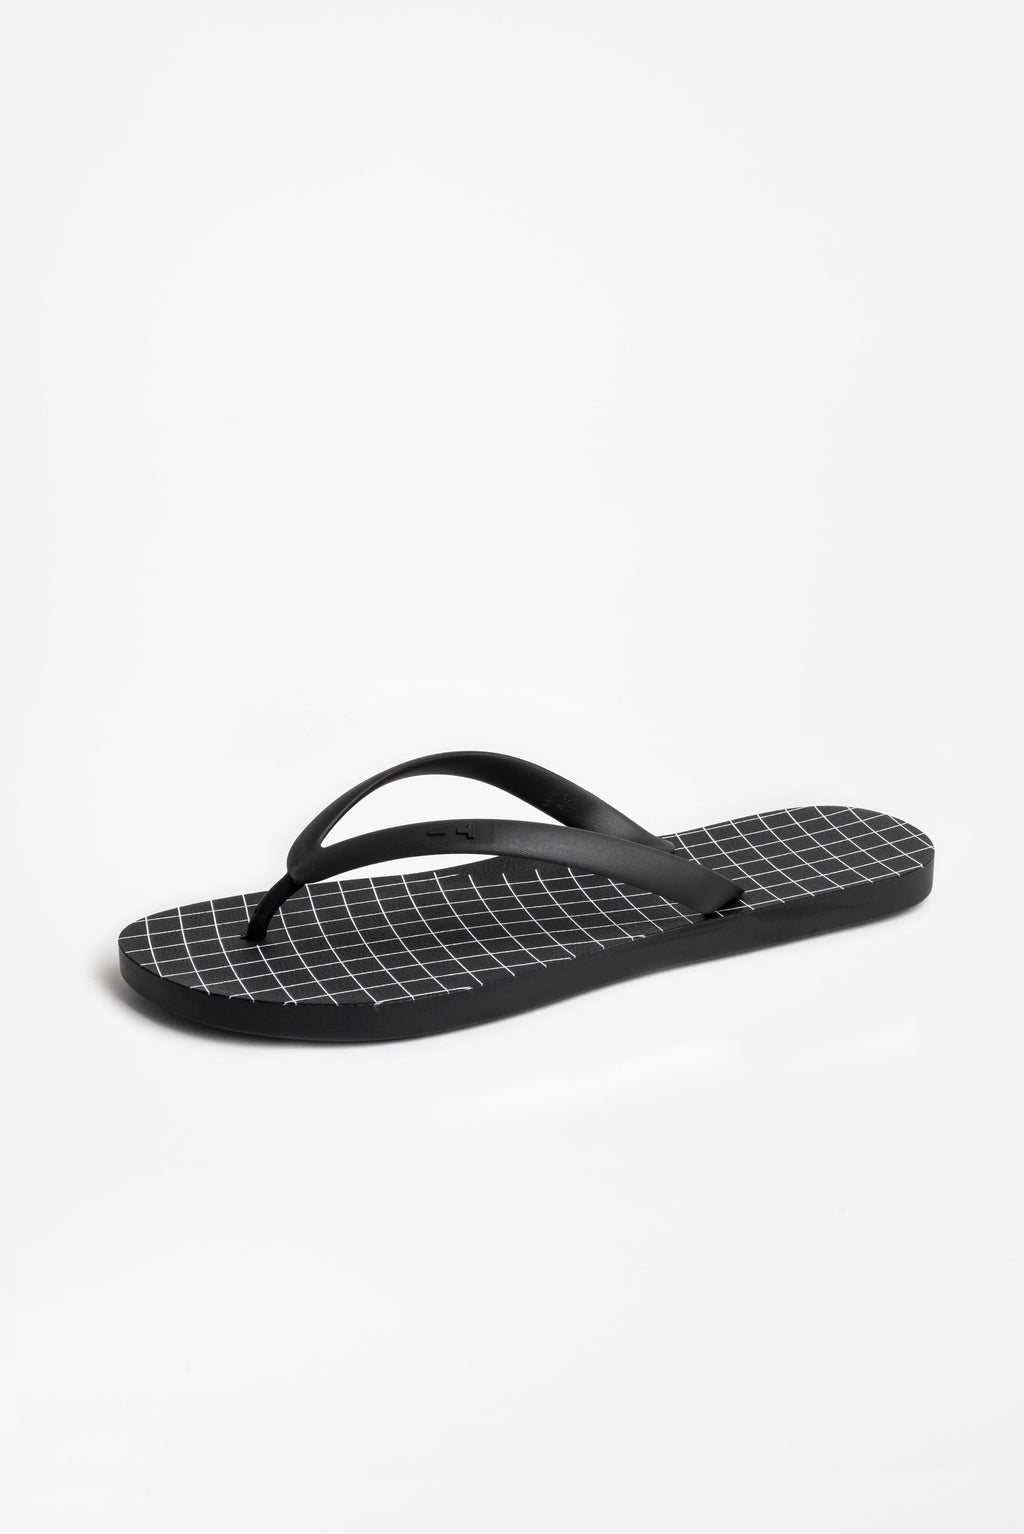 Grid design black flip flops for men. Sustainably made in America.